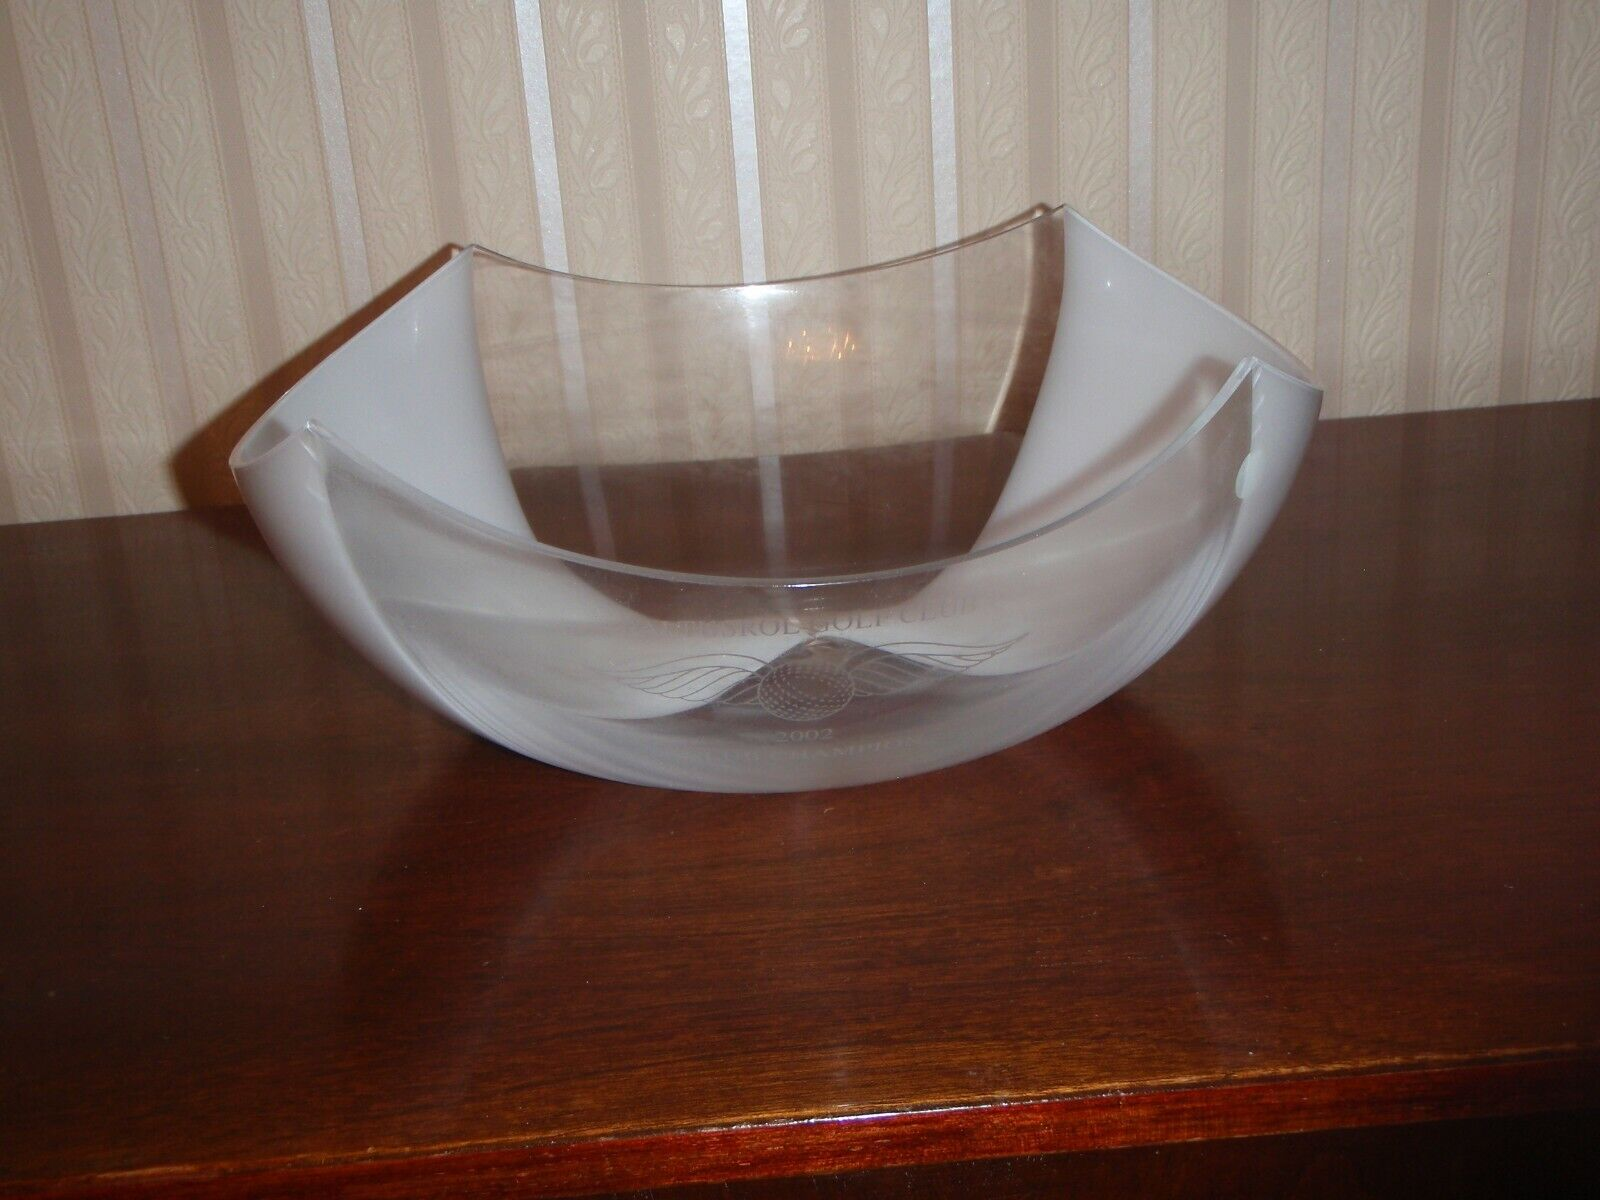 Murano Glass Bowl By Salviati For Tiffany Co. Engraved - $125.00